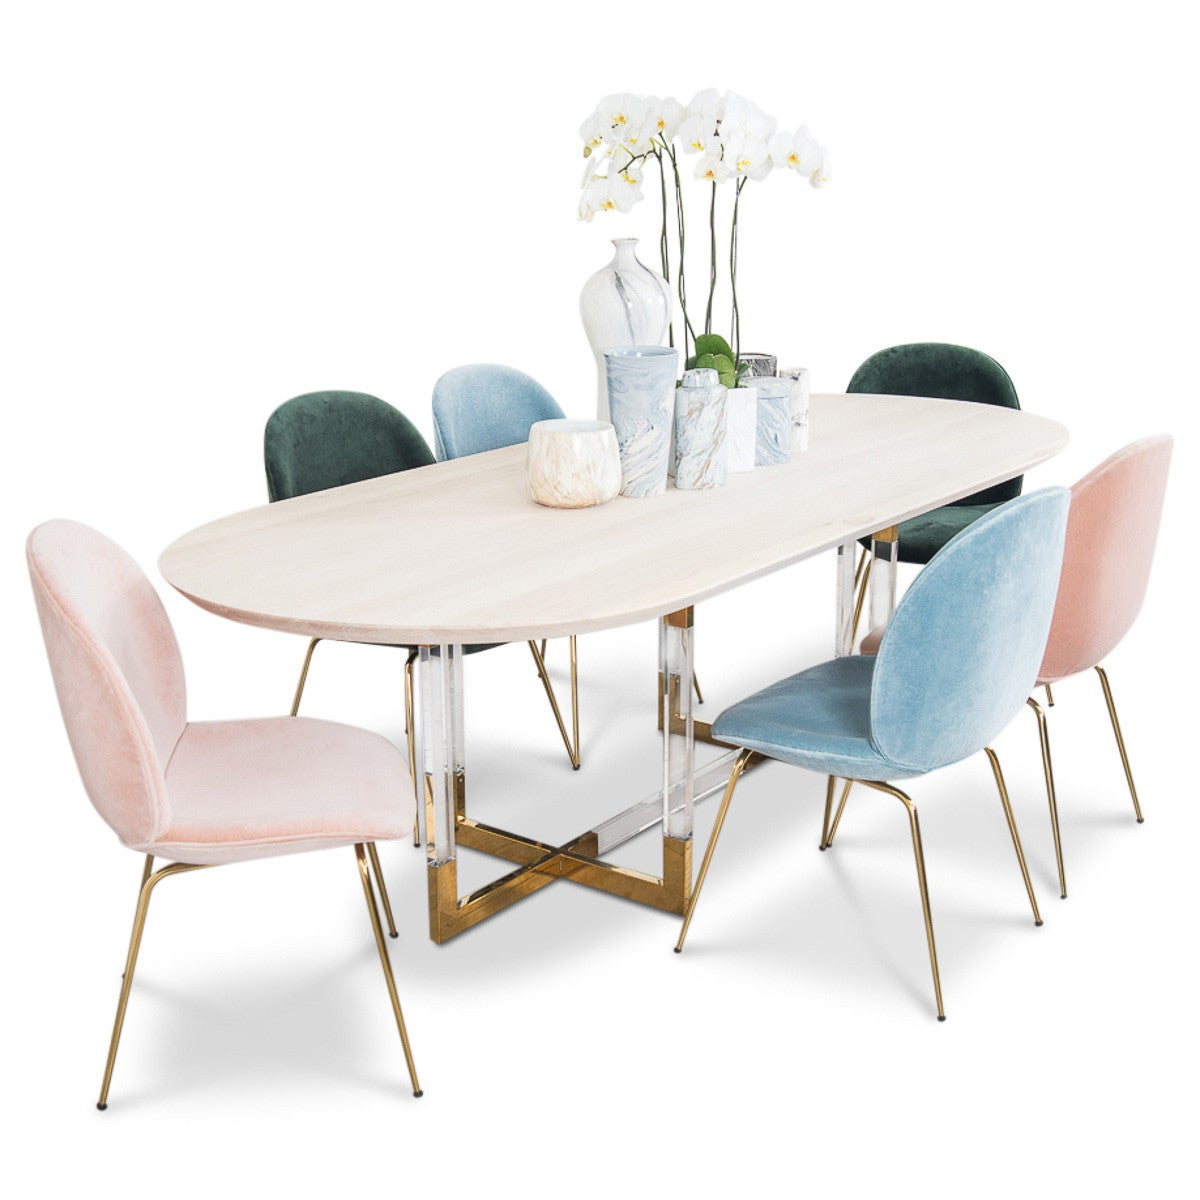 Superb Trousdale 2 Dining Table Oval Table In Light Hickory Modshop Cjindustries Chair Design For Home Cjindustriesco